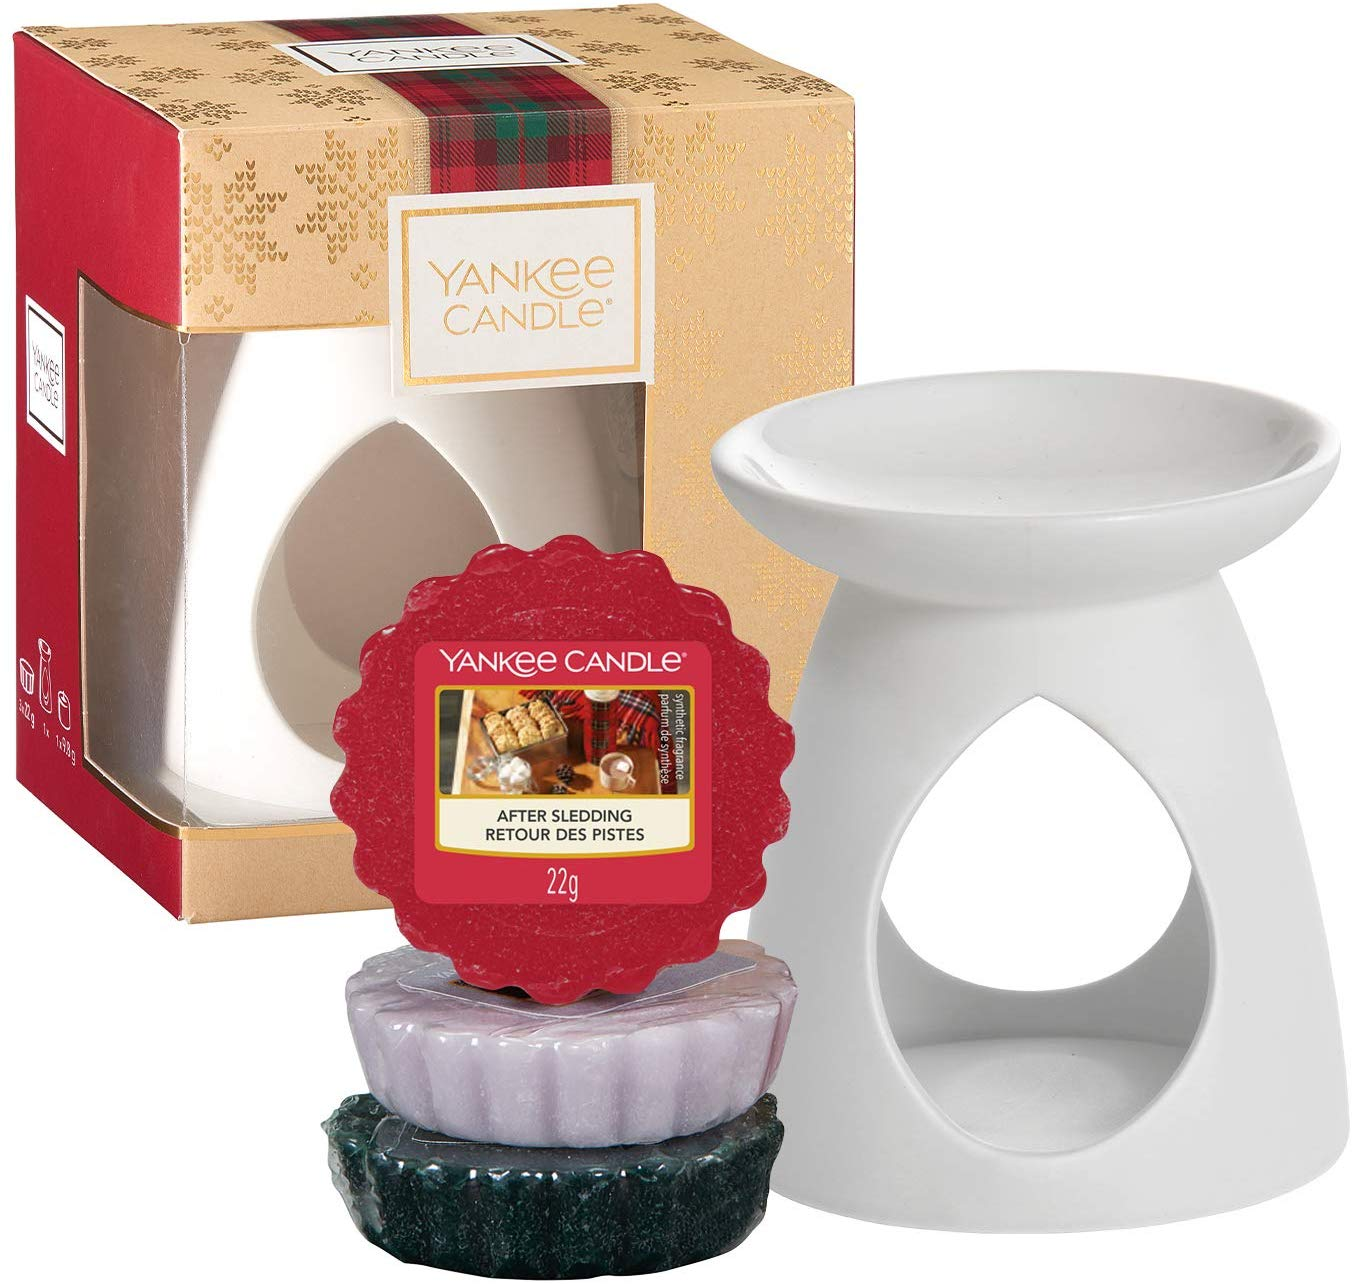 Yankee Candle Gift Set Festive Gift Box Now £11.99